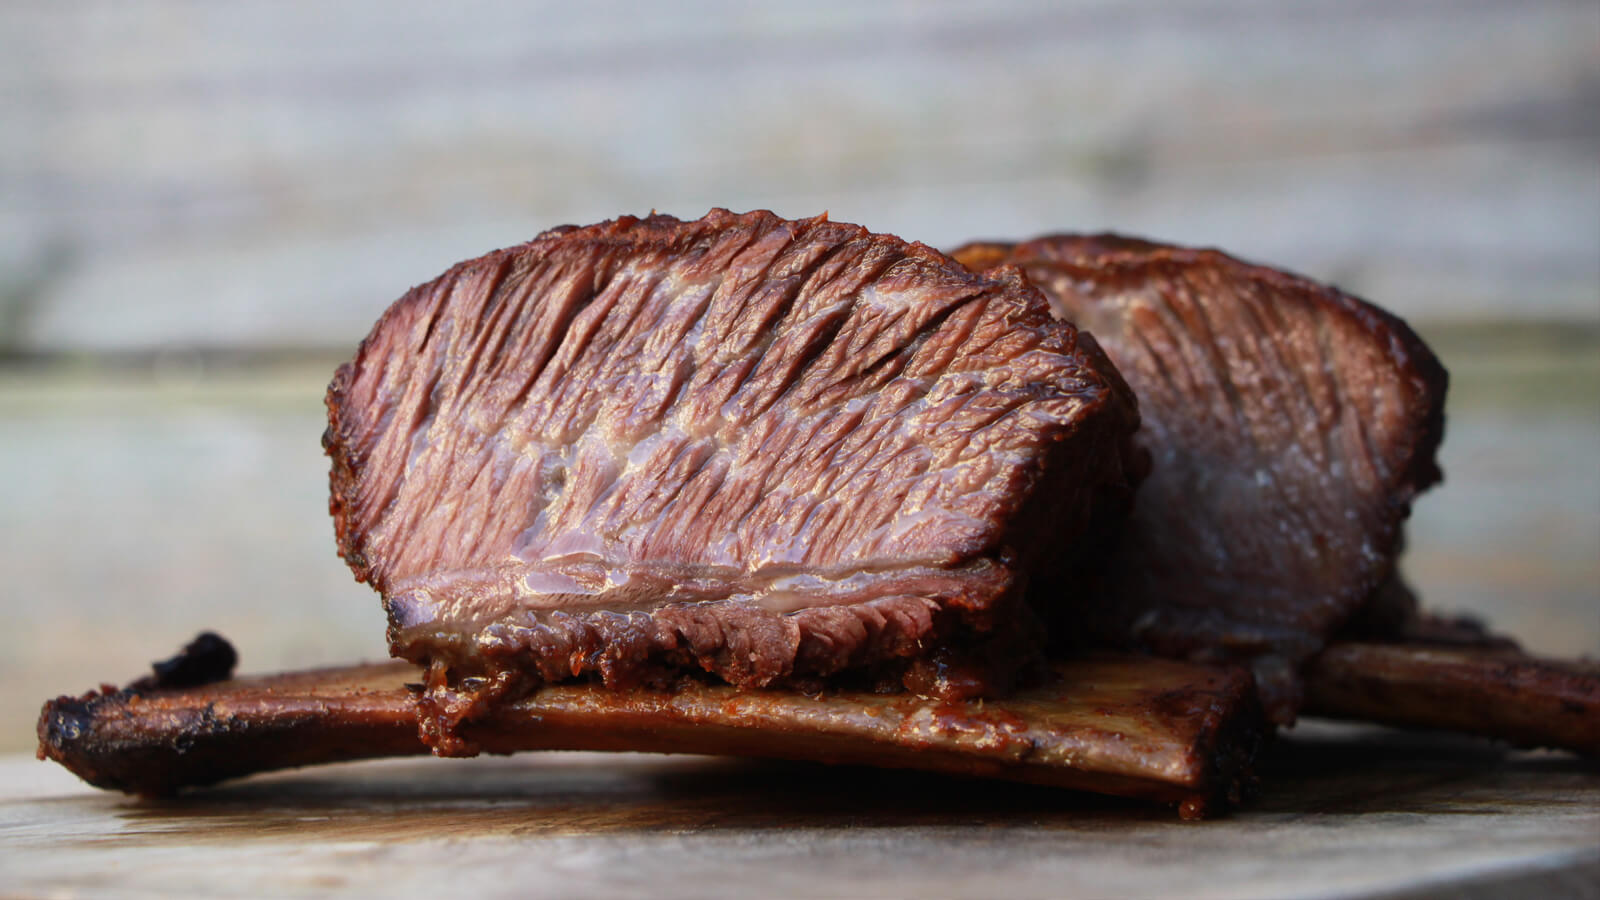 Low & Slow BBQ'en? Ga dan eens voor Short Ribs van de Barbecue!